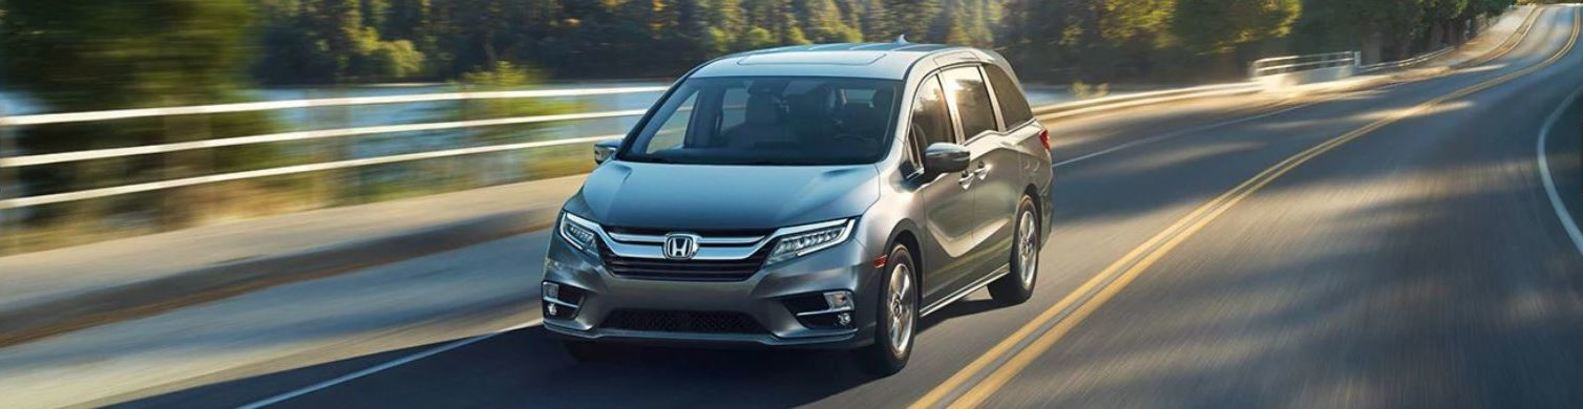 2020 Honda Odyssey for Sale in Lisle, IL